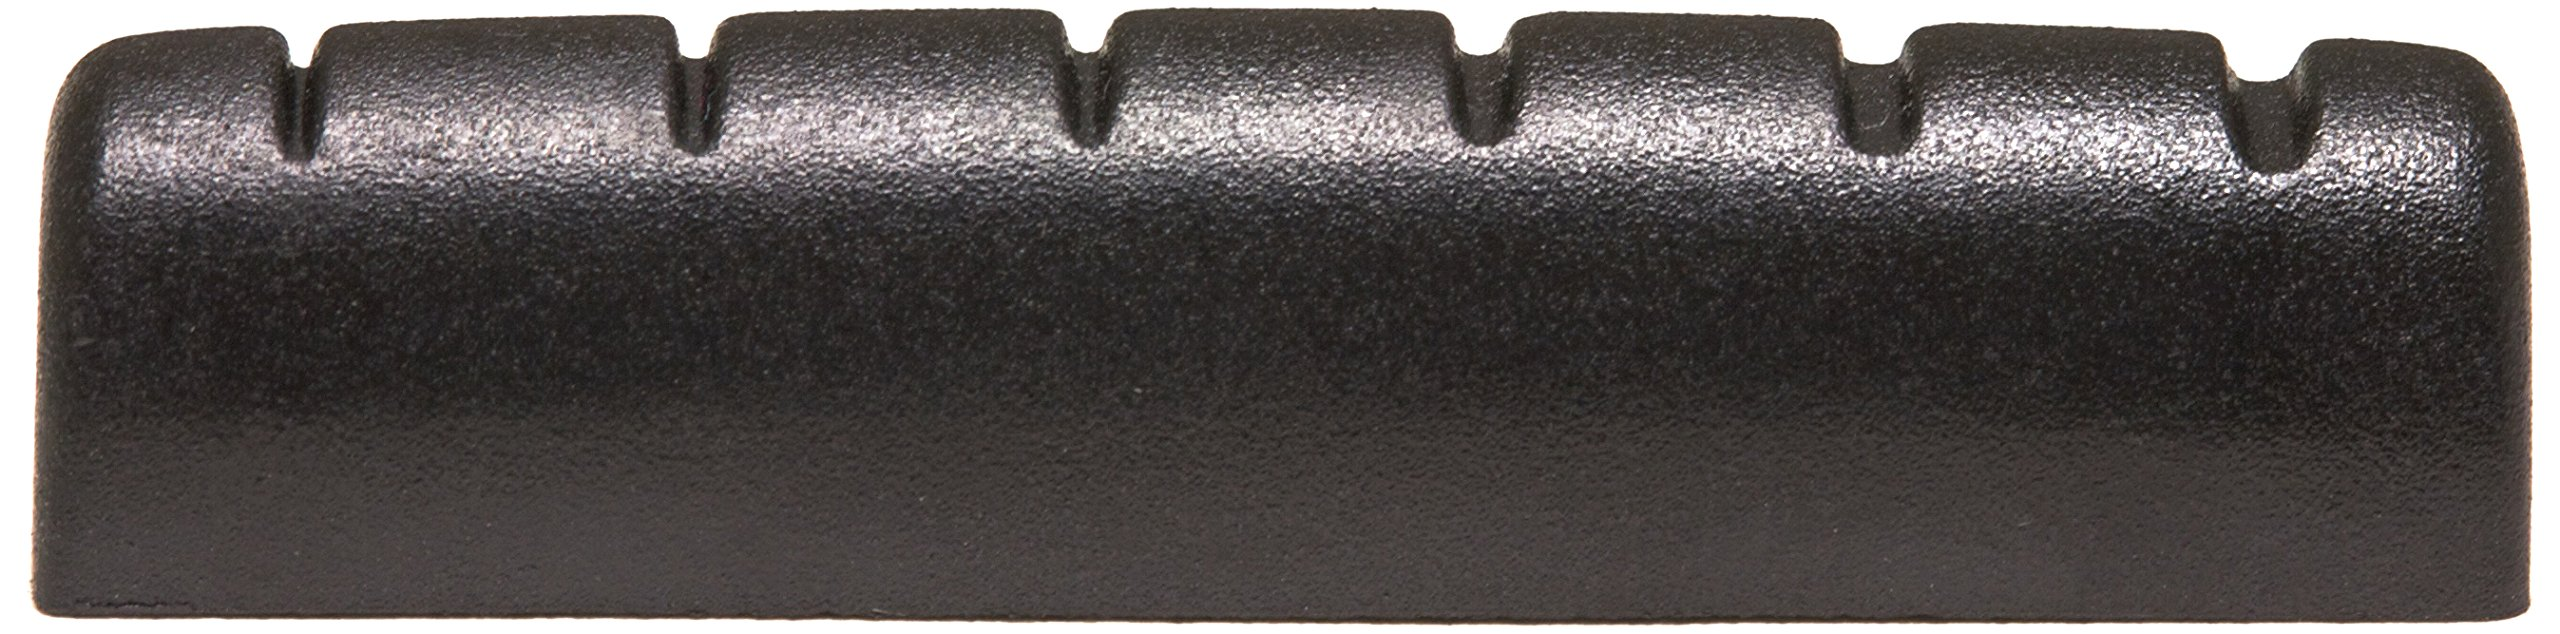 GraphTech PT606000 TUSQ XL Black Self-Lubricating Slotted Nut, Epiphone Style